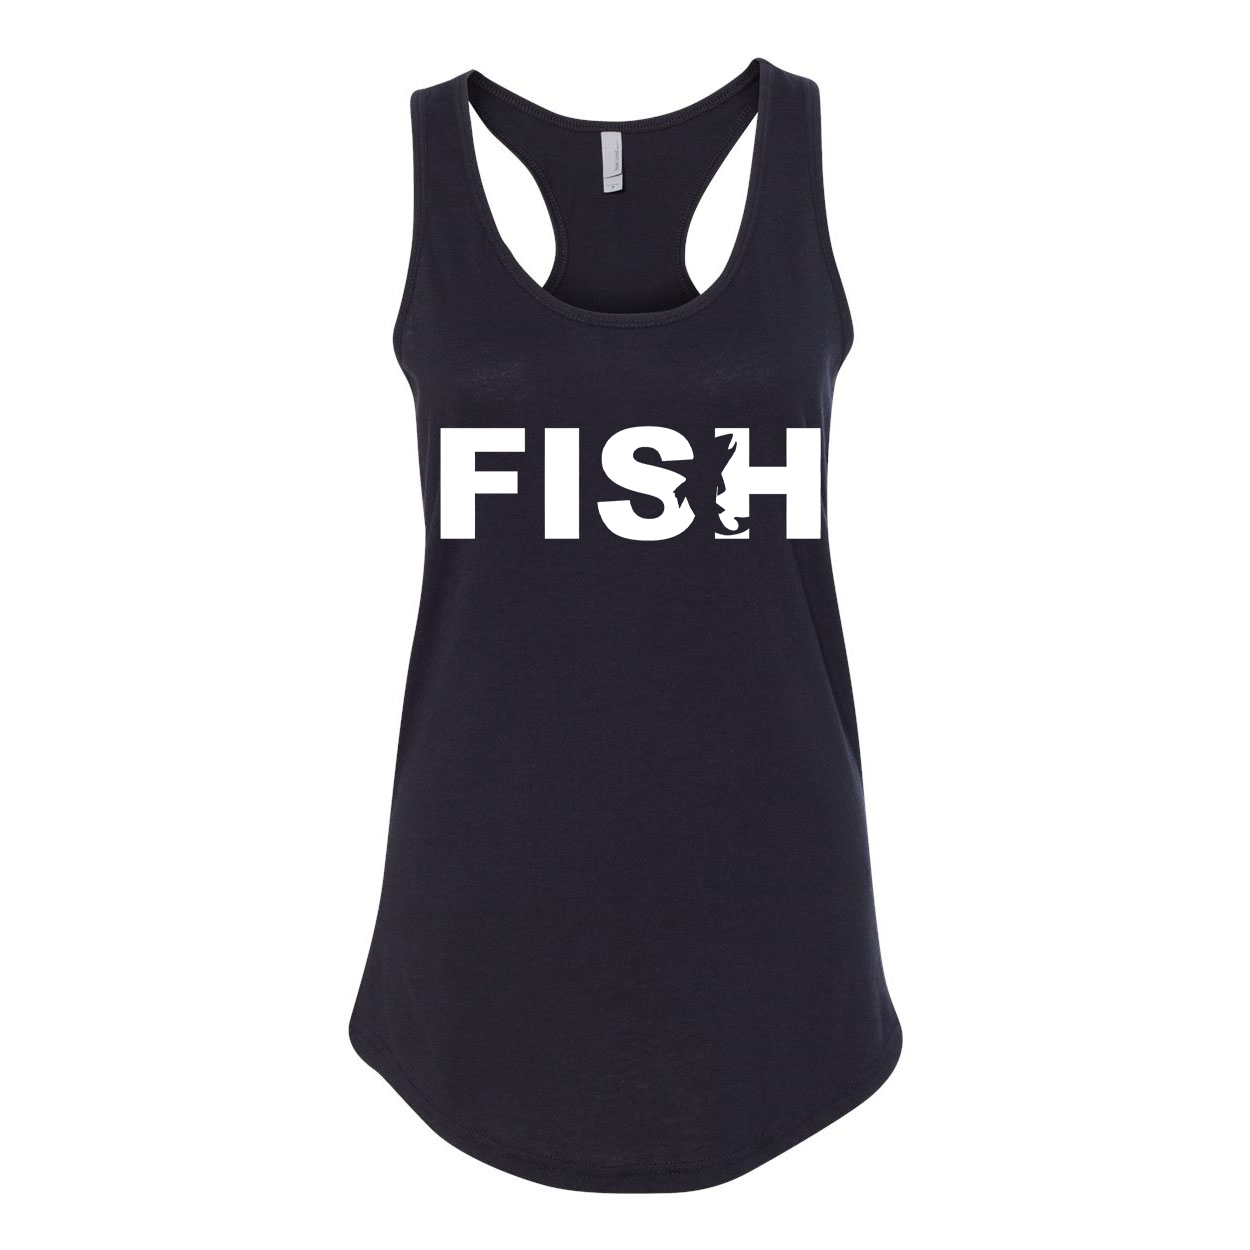 Fish Catch Logo Classic Women's Racerback Tank Top Black (White Logo)